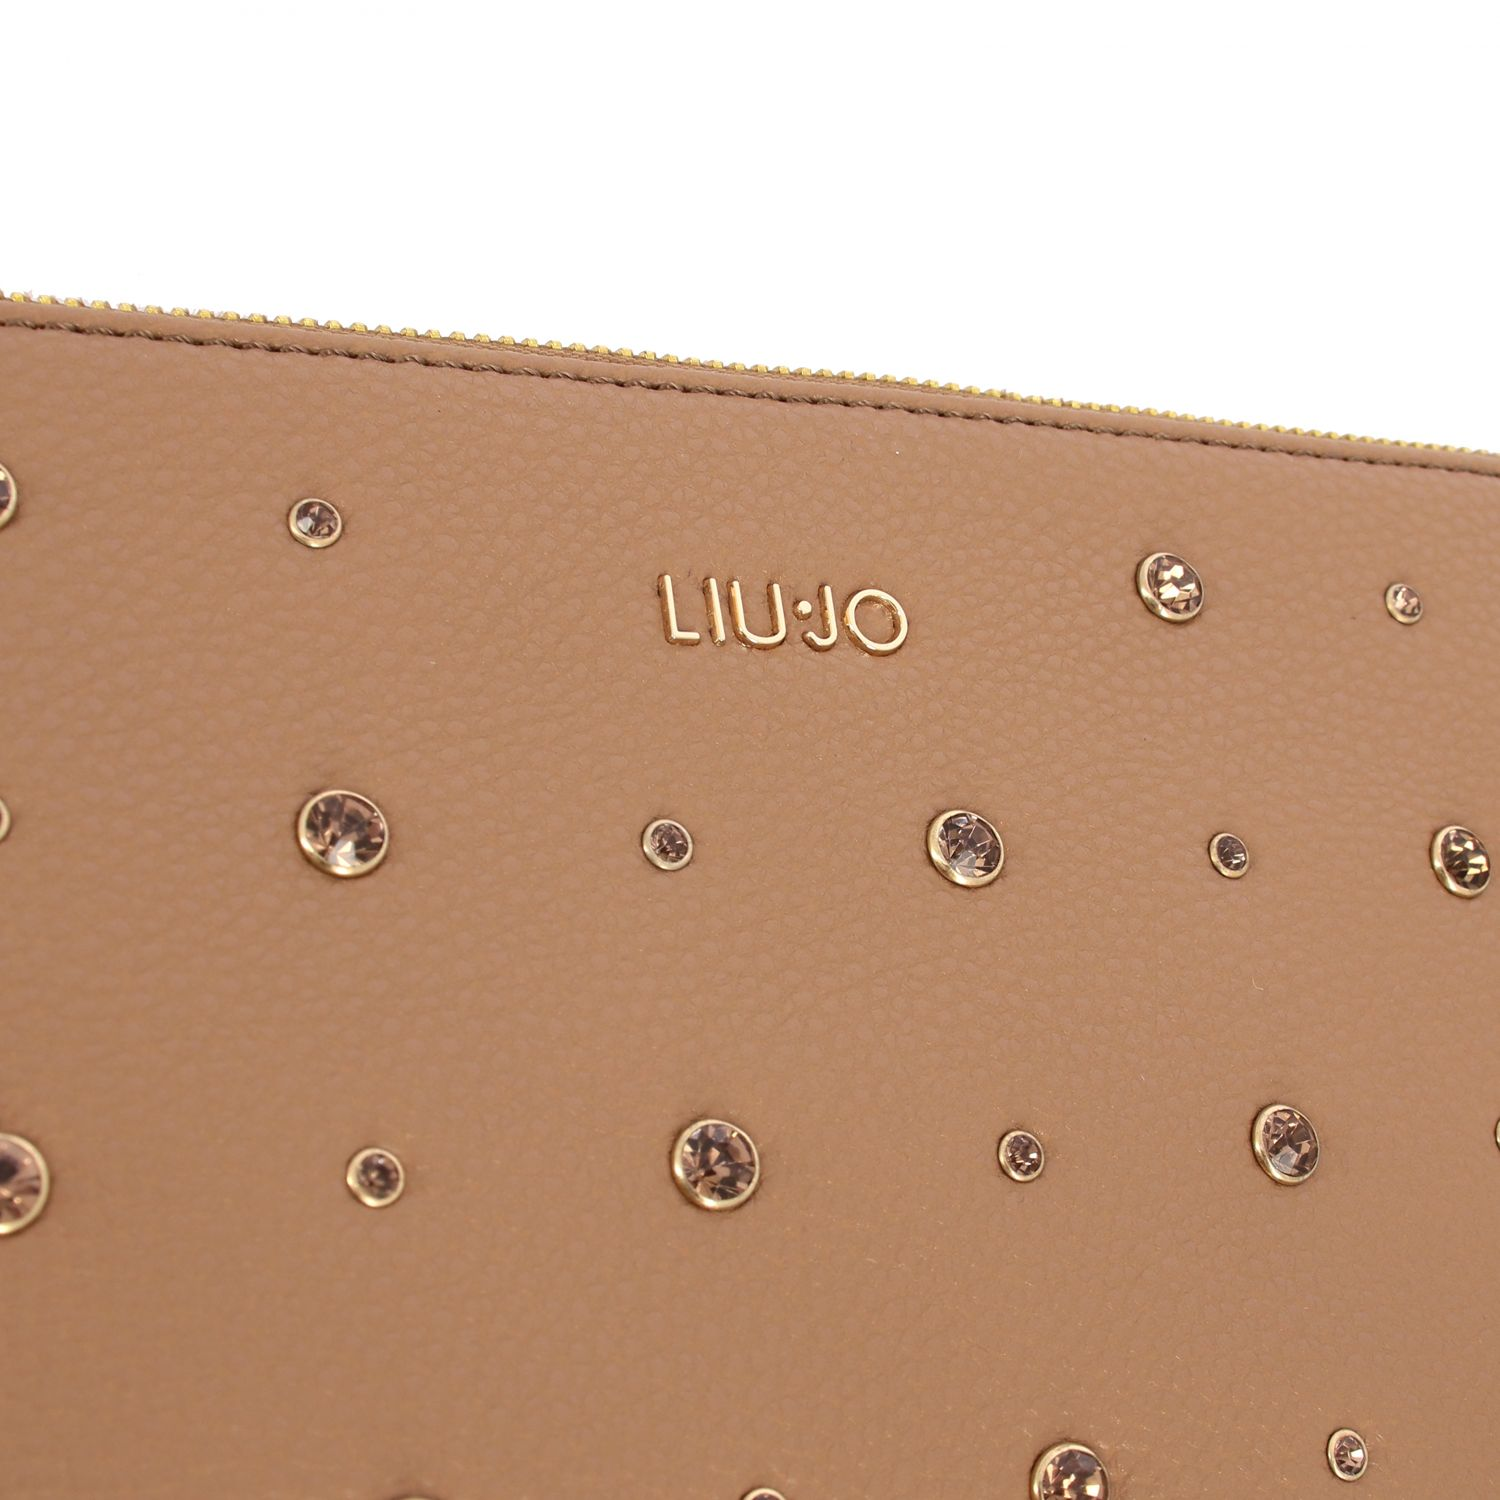 Liu Jo clutch in synthetic leather with all-over rhinestones camel 4